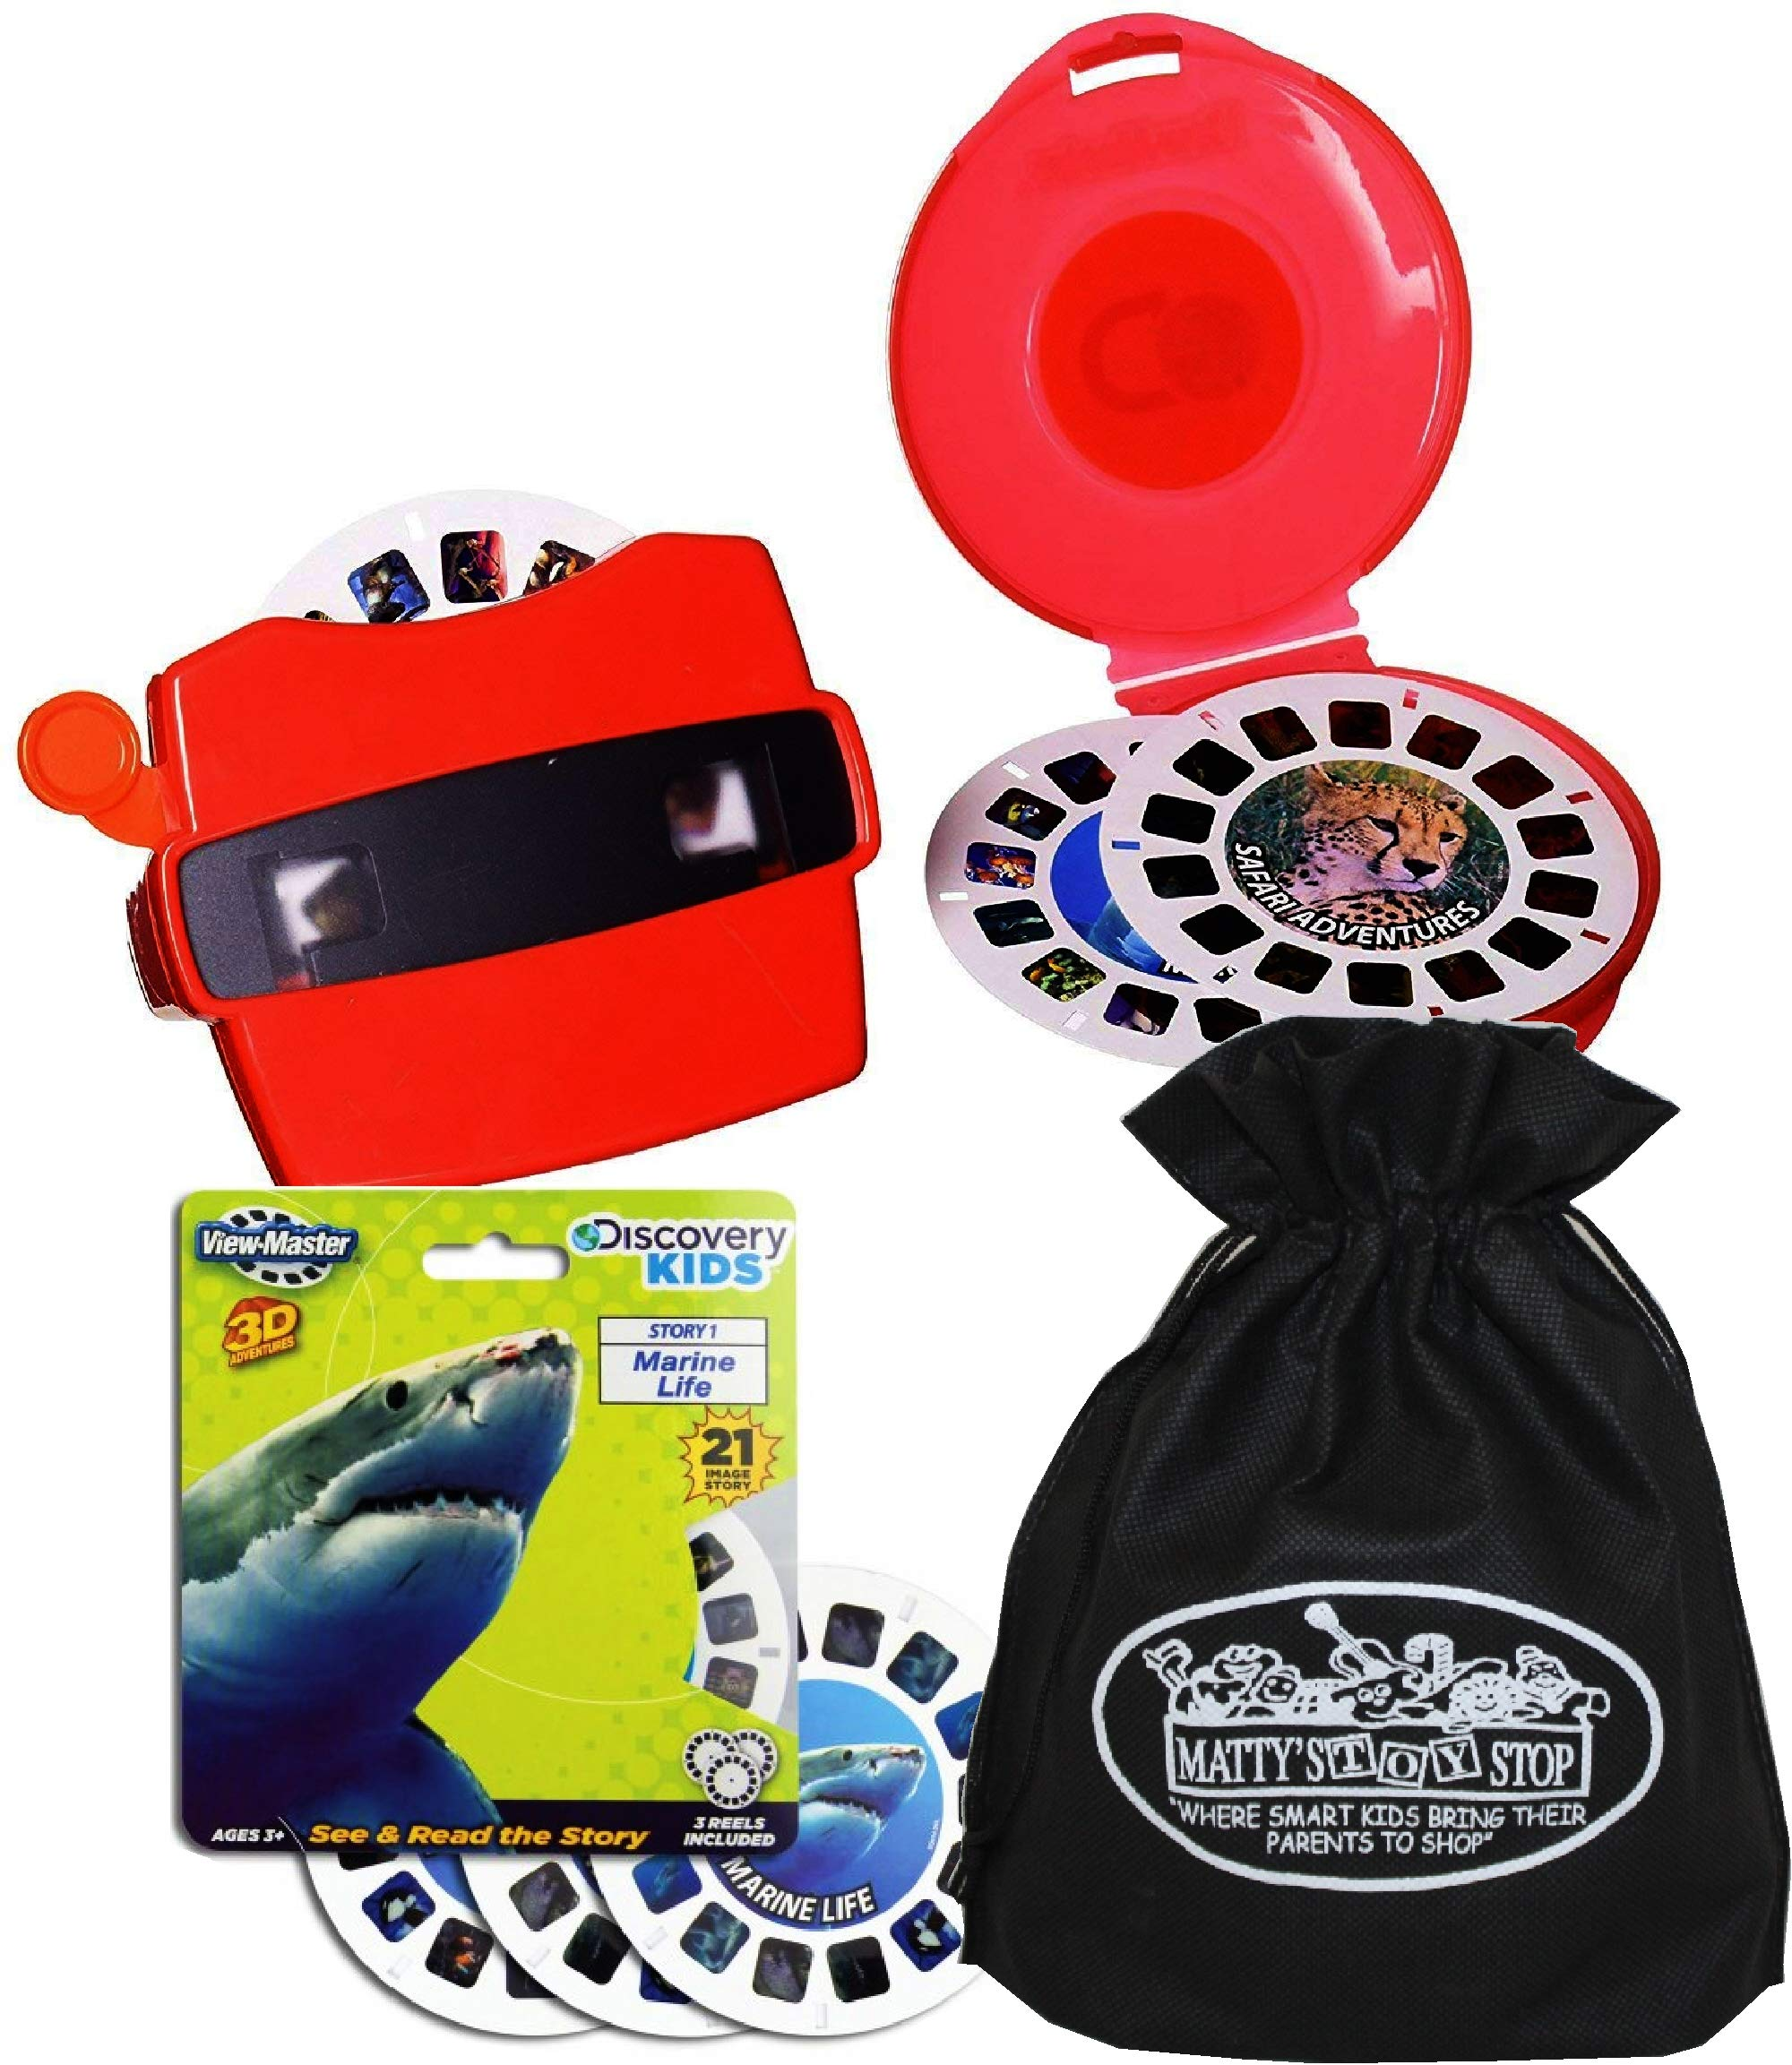 View Master Classic 3D Adventures Discovery Boxed Set & Marine Life Refill Gift Set Bundle with Bonus Matty's Toy Stop Storage Bag - 2 Pack by View Master (Image #5)